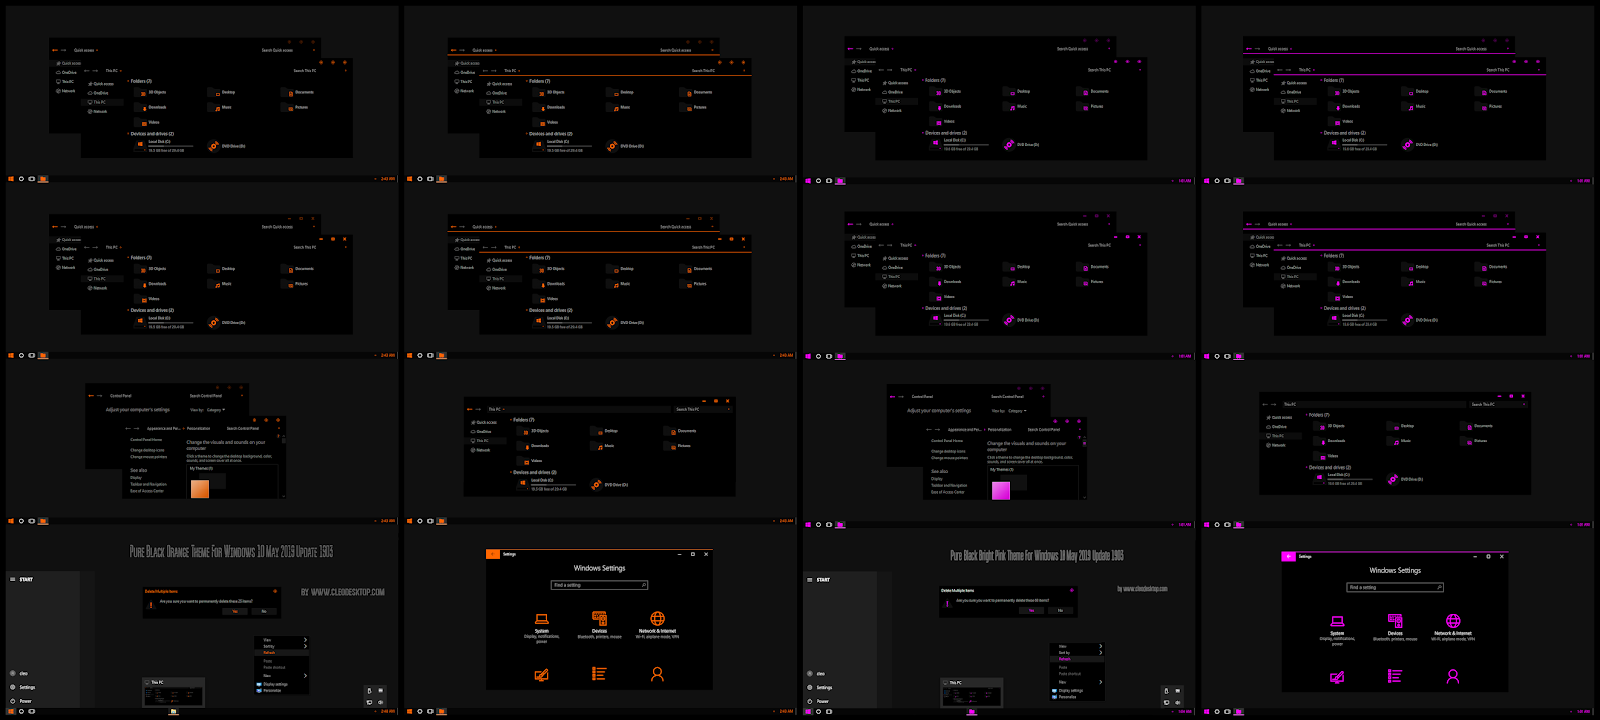 Pure Black Bright Pink and Orange Combo Pack Theme For Windows10 1903